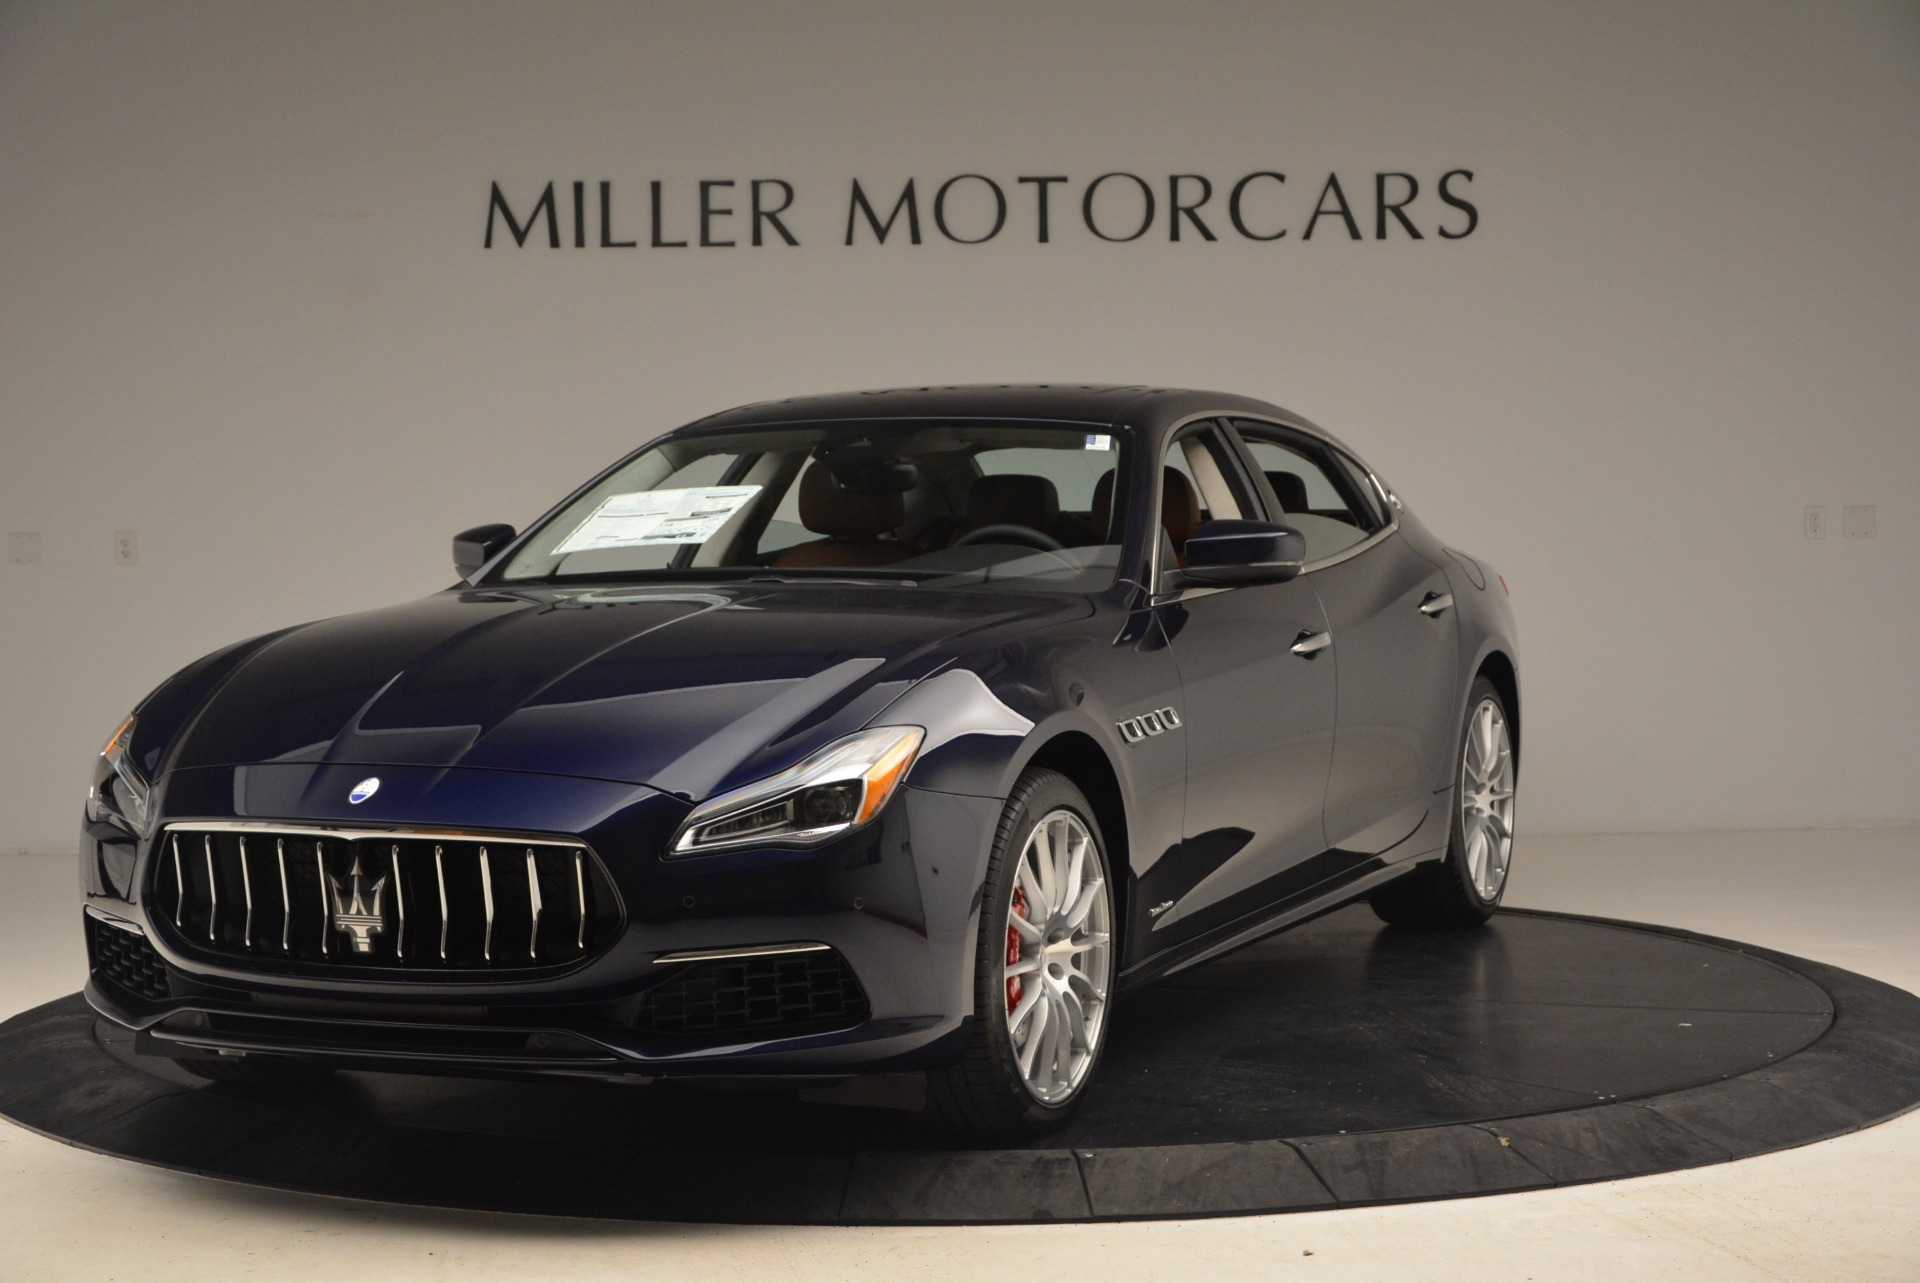 New 2019 Maserati Quattroporte S Q4 GranSport for sale Sold at Rolls-Royce Motor Cars Greenwich in Greenwich CT 06830 1